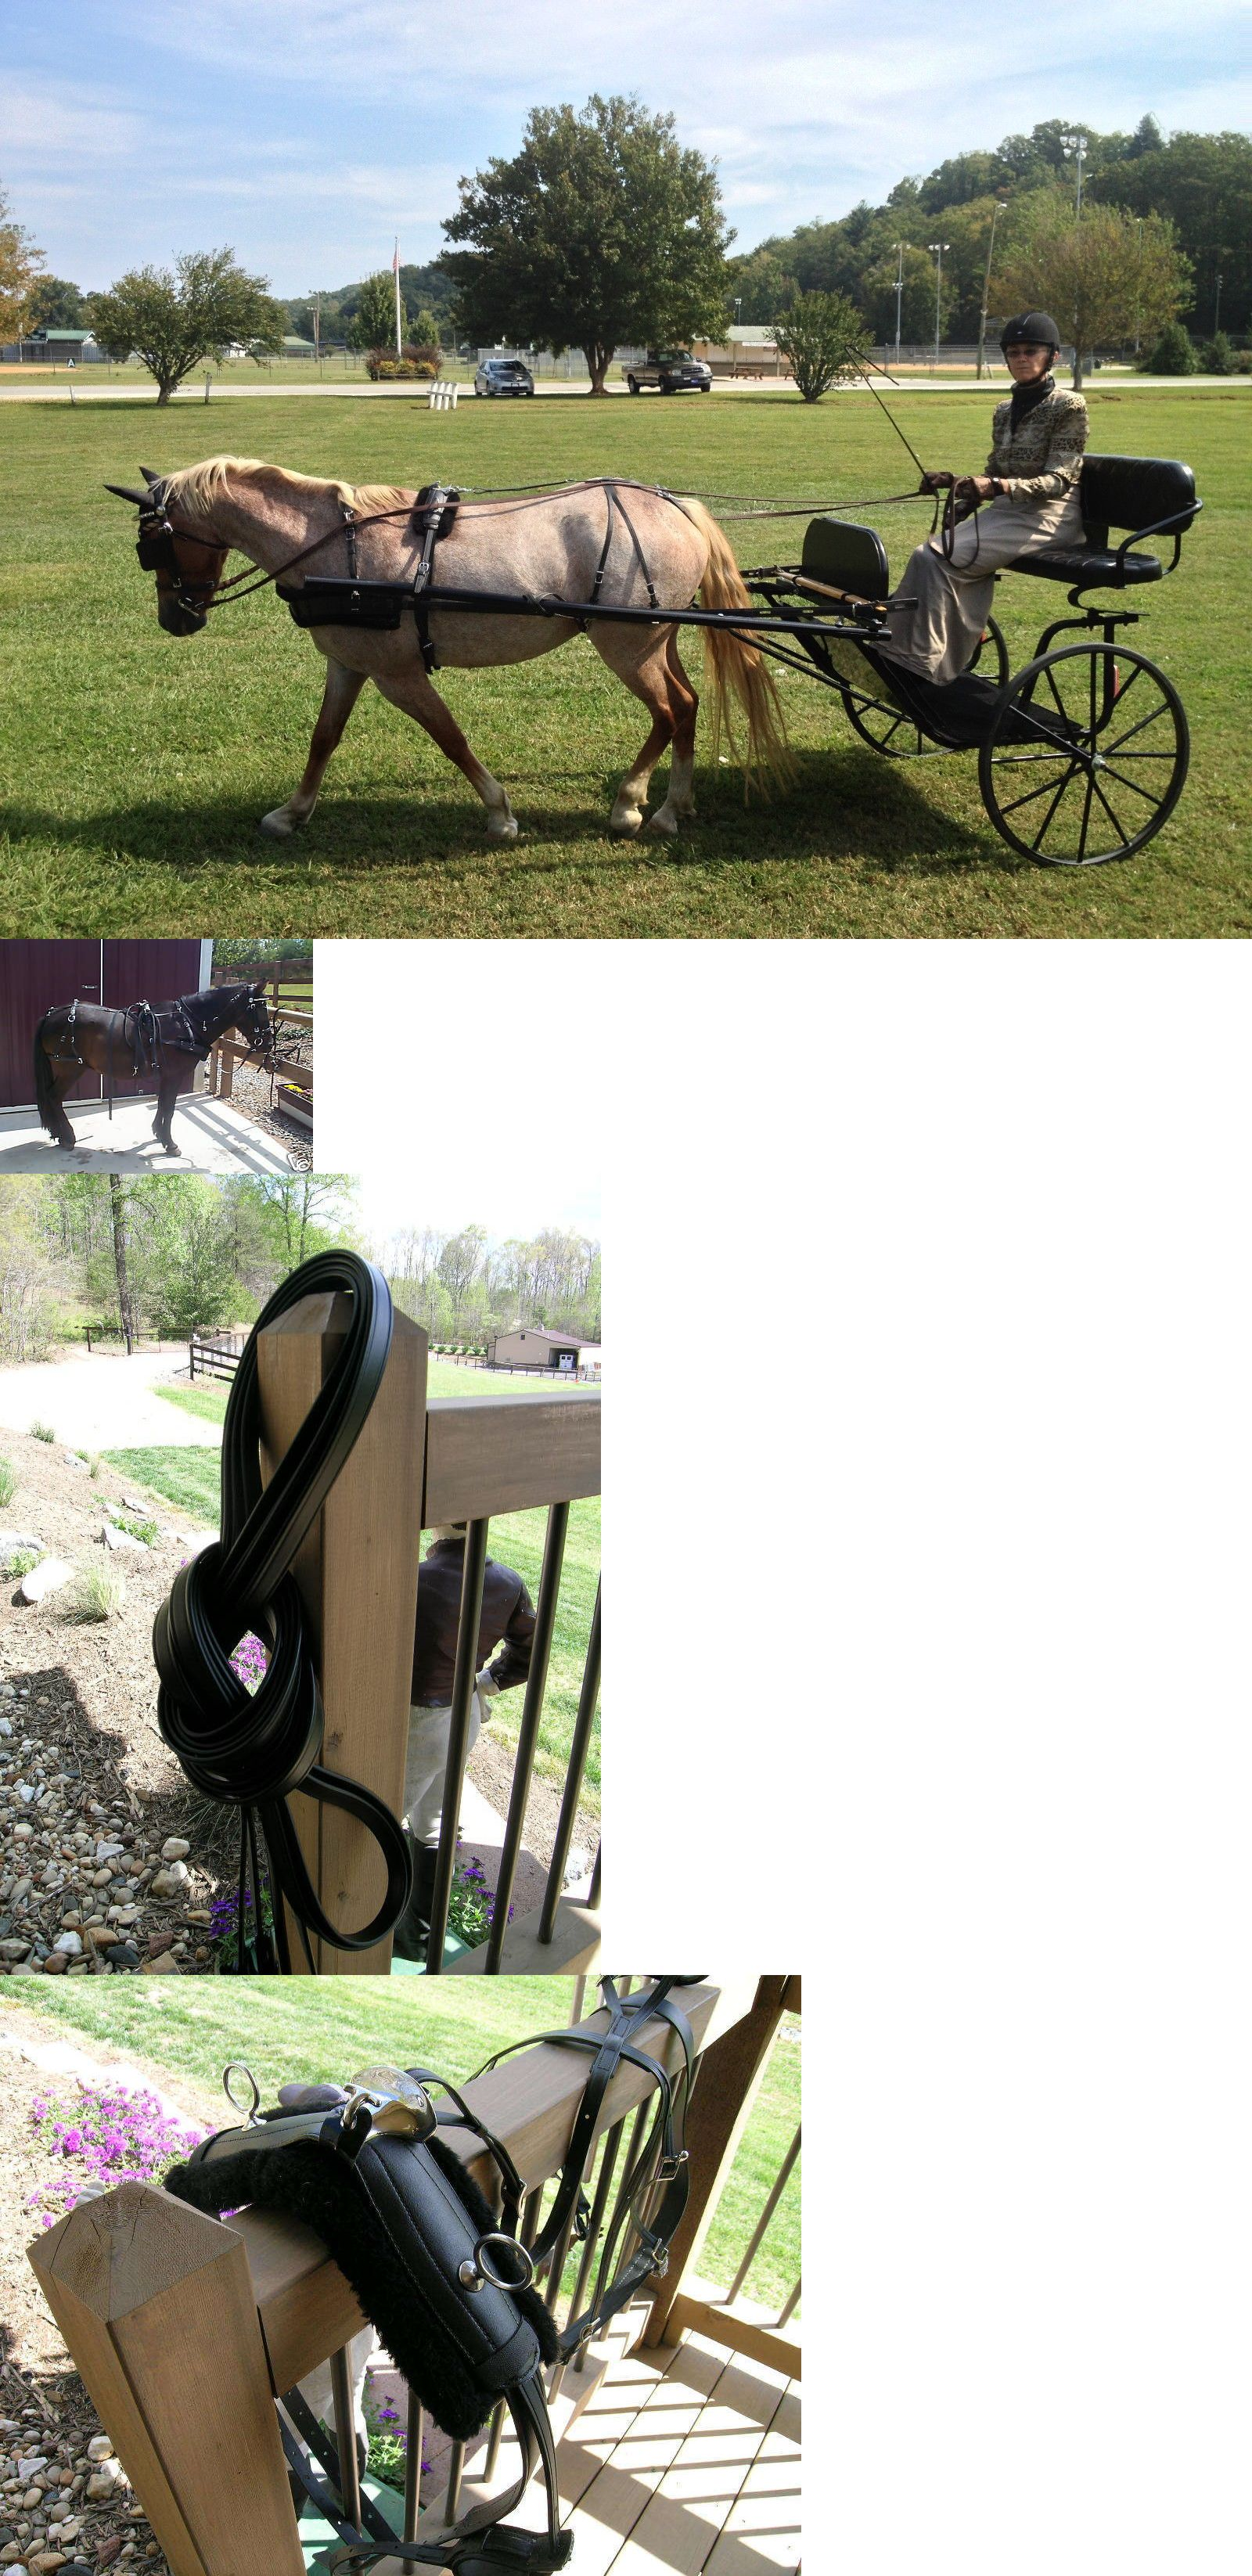 driving equipment 85178 biothane large pony harness stainless hardware new  [ 1600 x 3292 Pixel ]